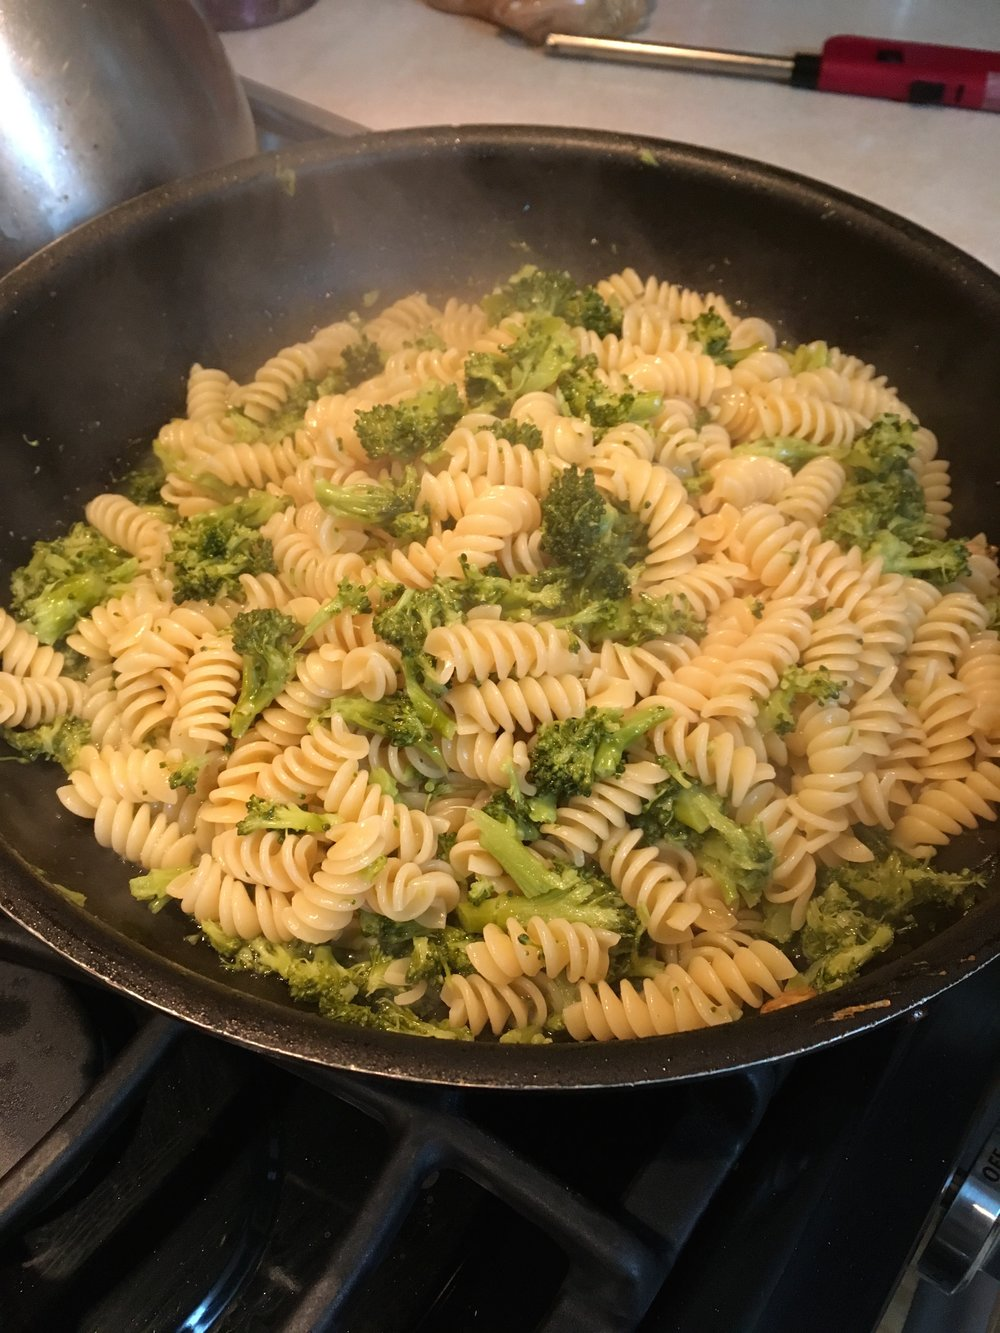 My dad's 'famous' broccoli pasta